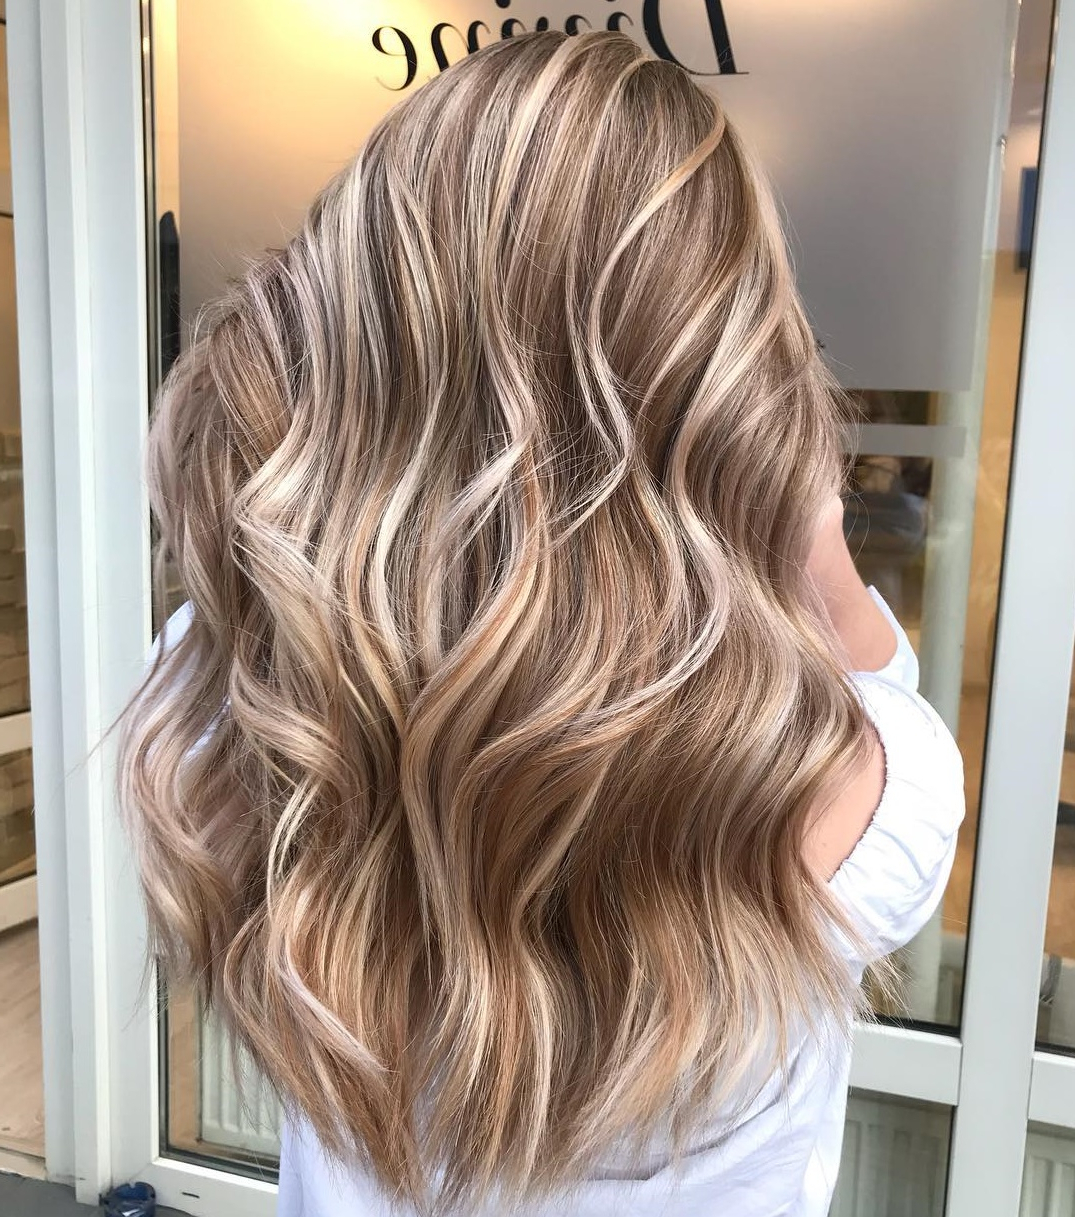 20 Light Brown Hair Color Ideas For Your New Look In Golden Bronde Bob Hairstyles With Piecey Layers (View 16 of 20)